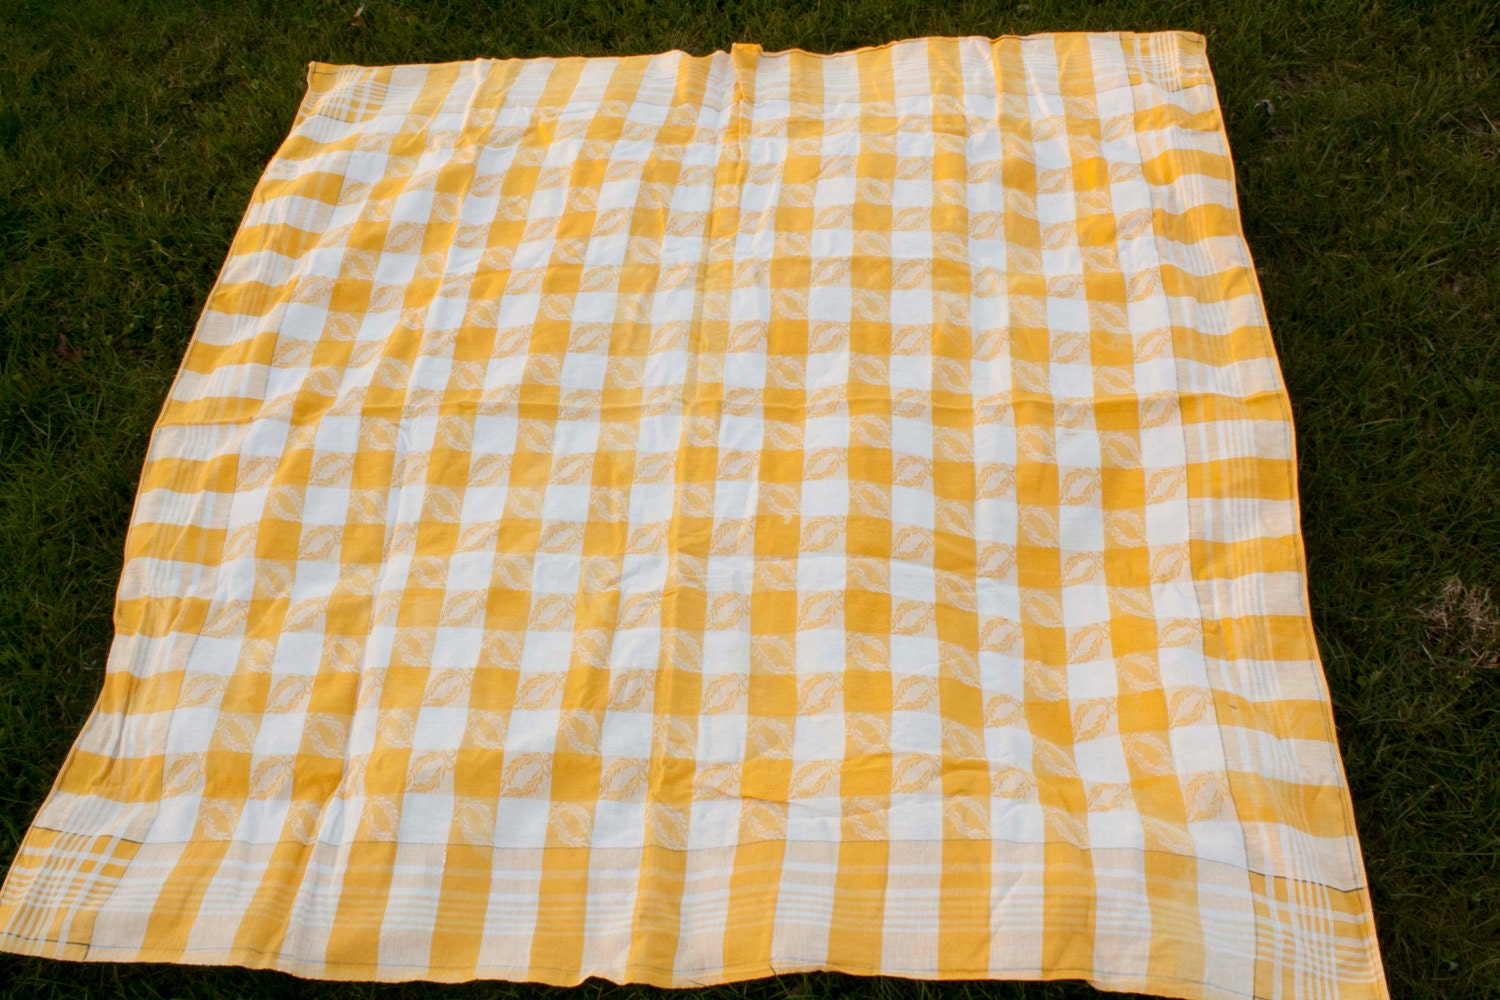 yellow plaid table cloth 50x50 picnic check vintage small. Black Bedroom Furniture Sets. Home Design Ideas